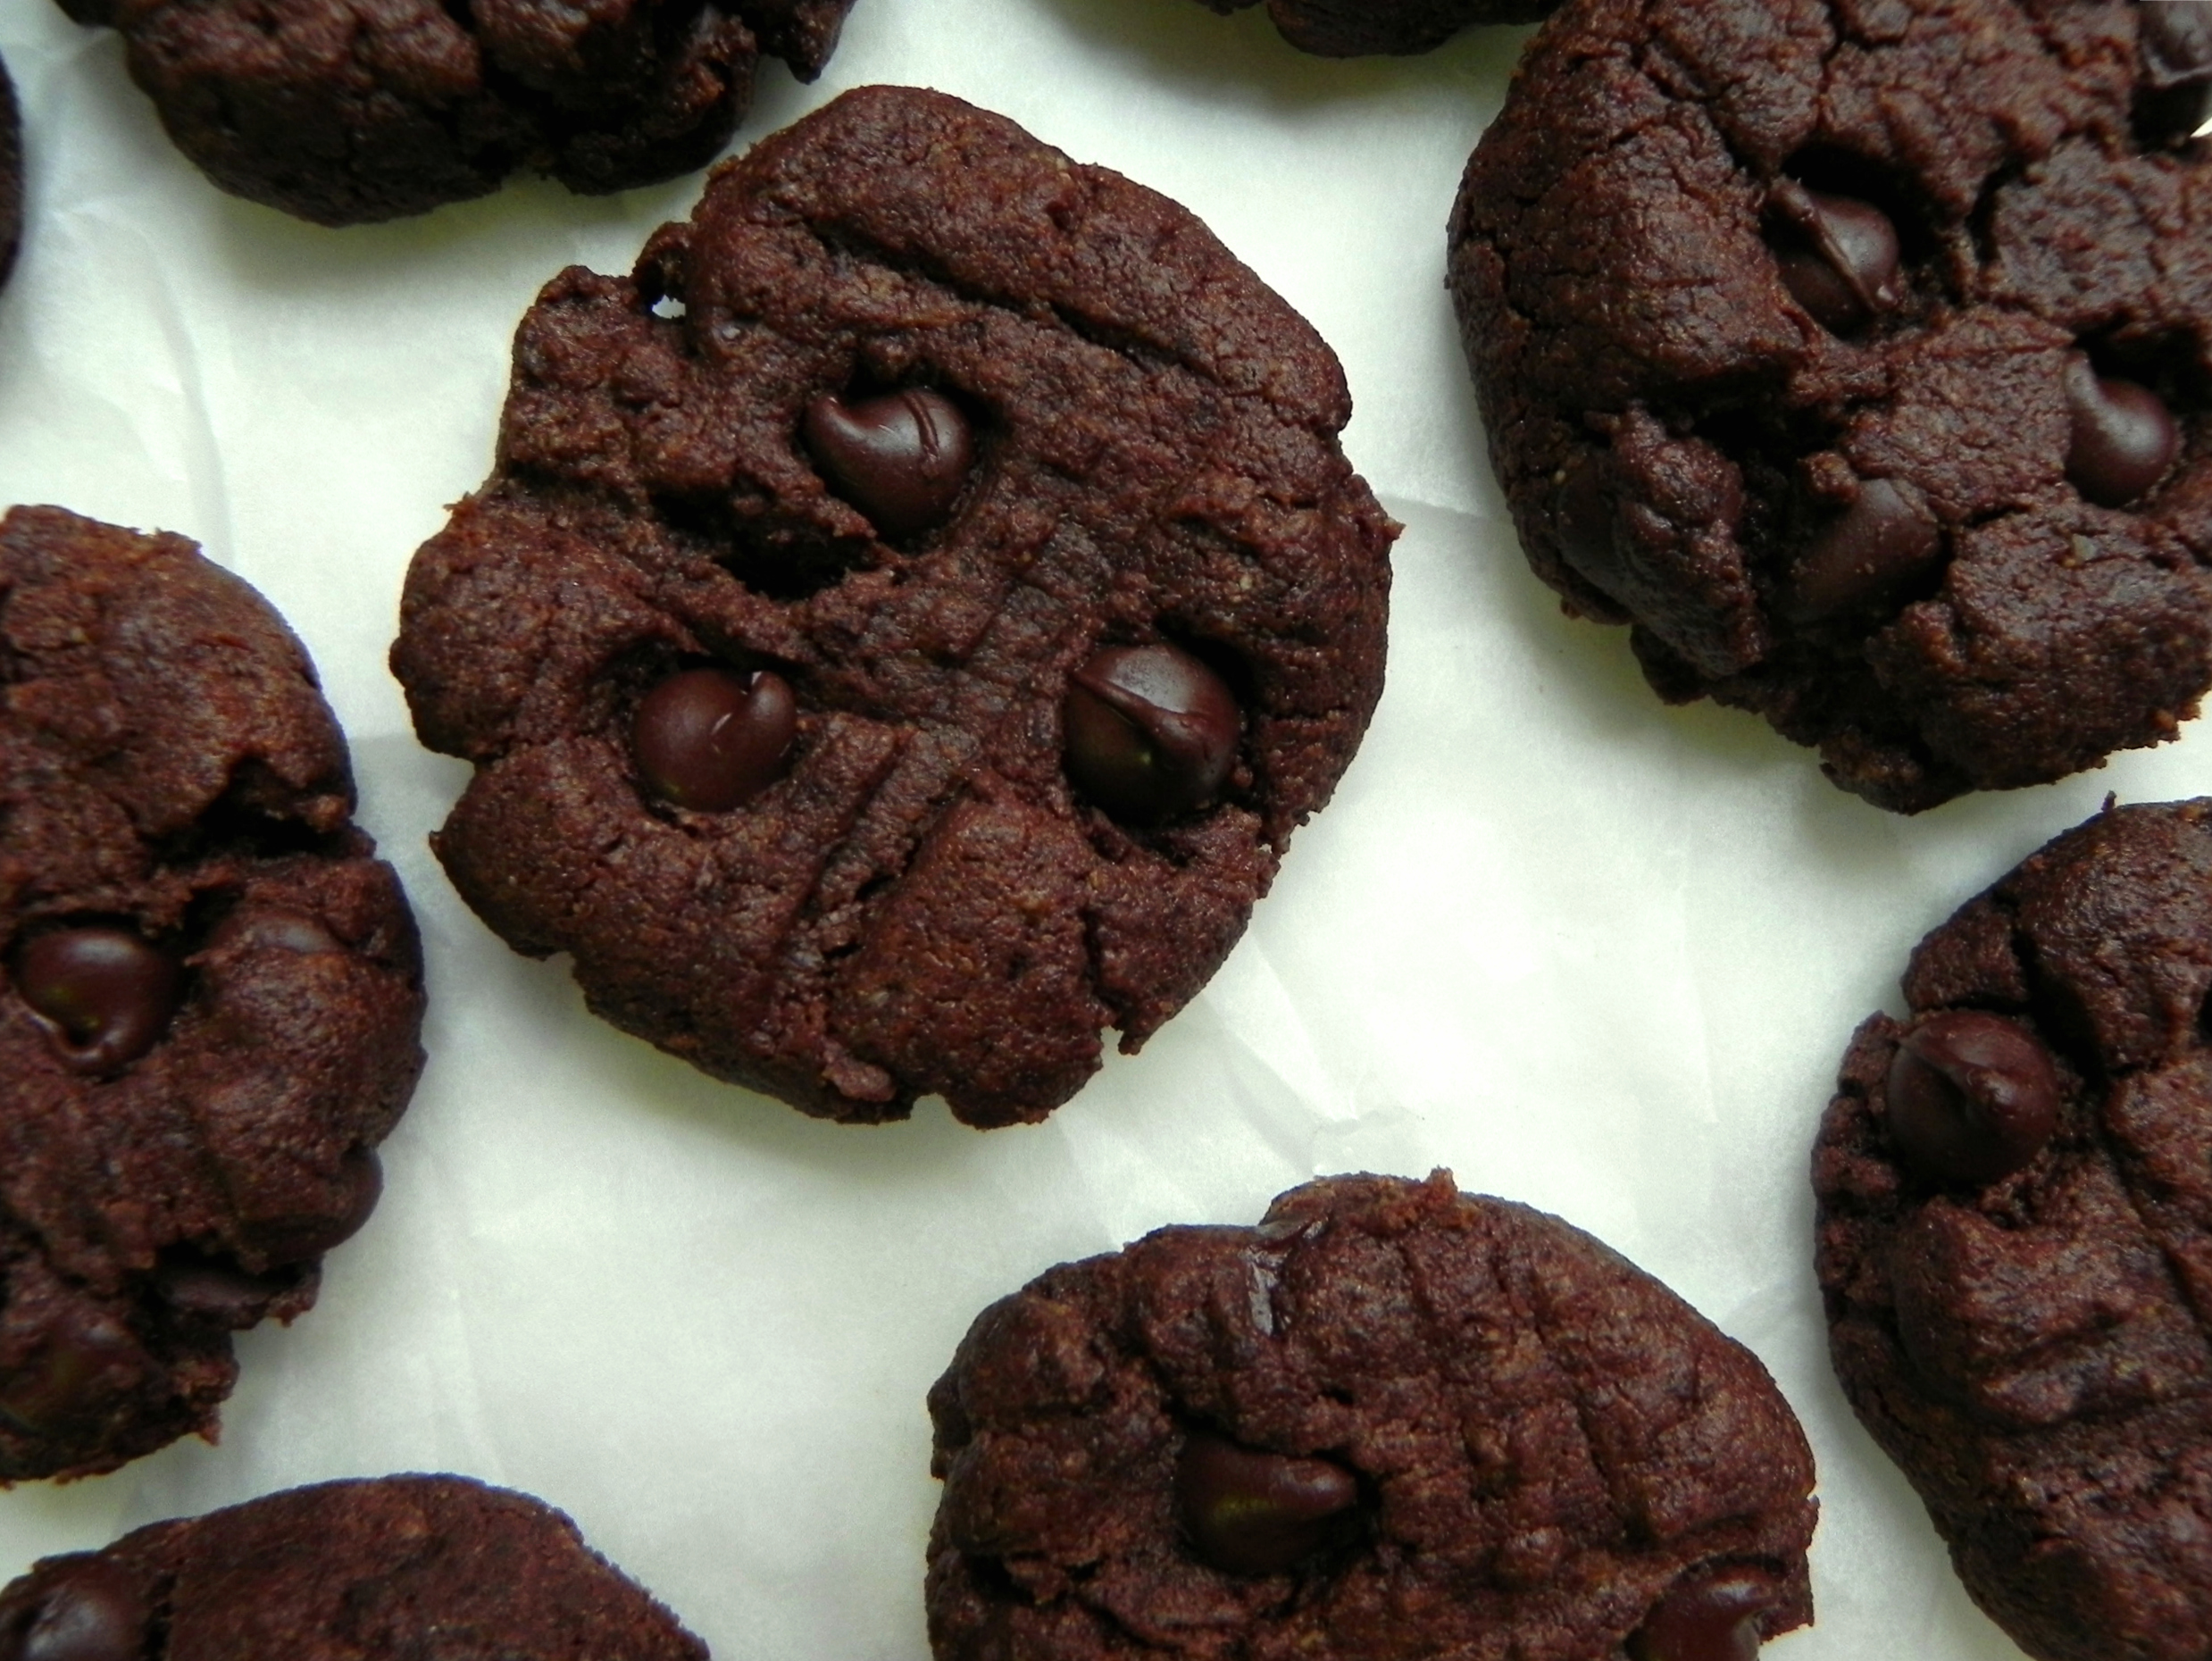 Chocolate Flourless Peanut Butter Cookies